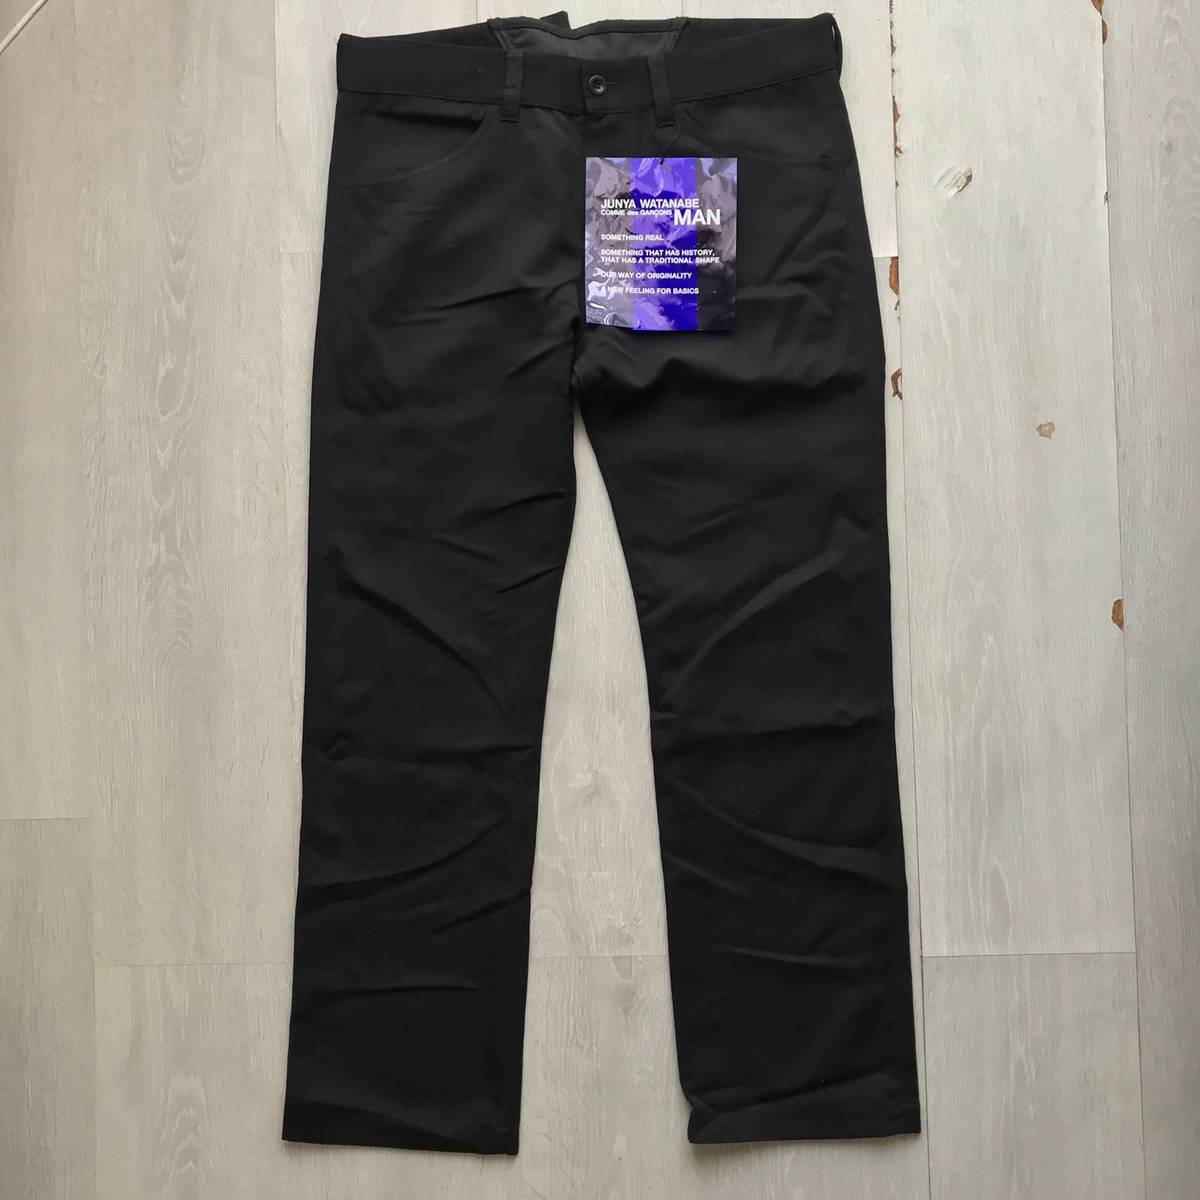 8a08be0689f5 Junya Watanabe Black Adjustable Trousers